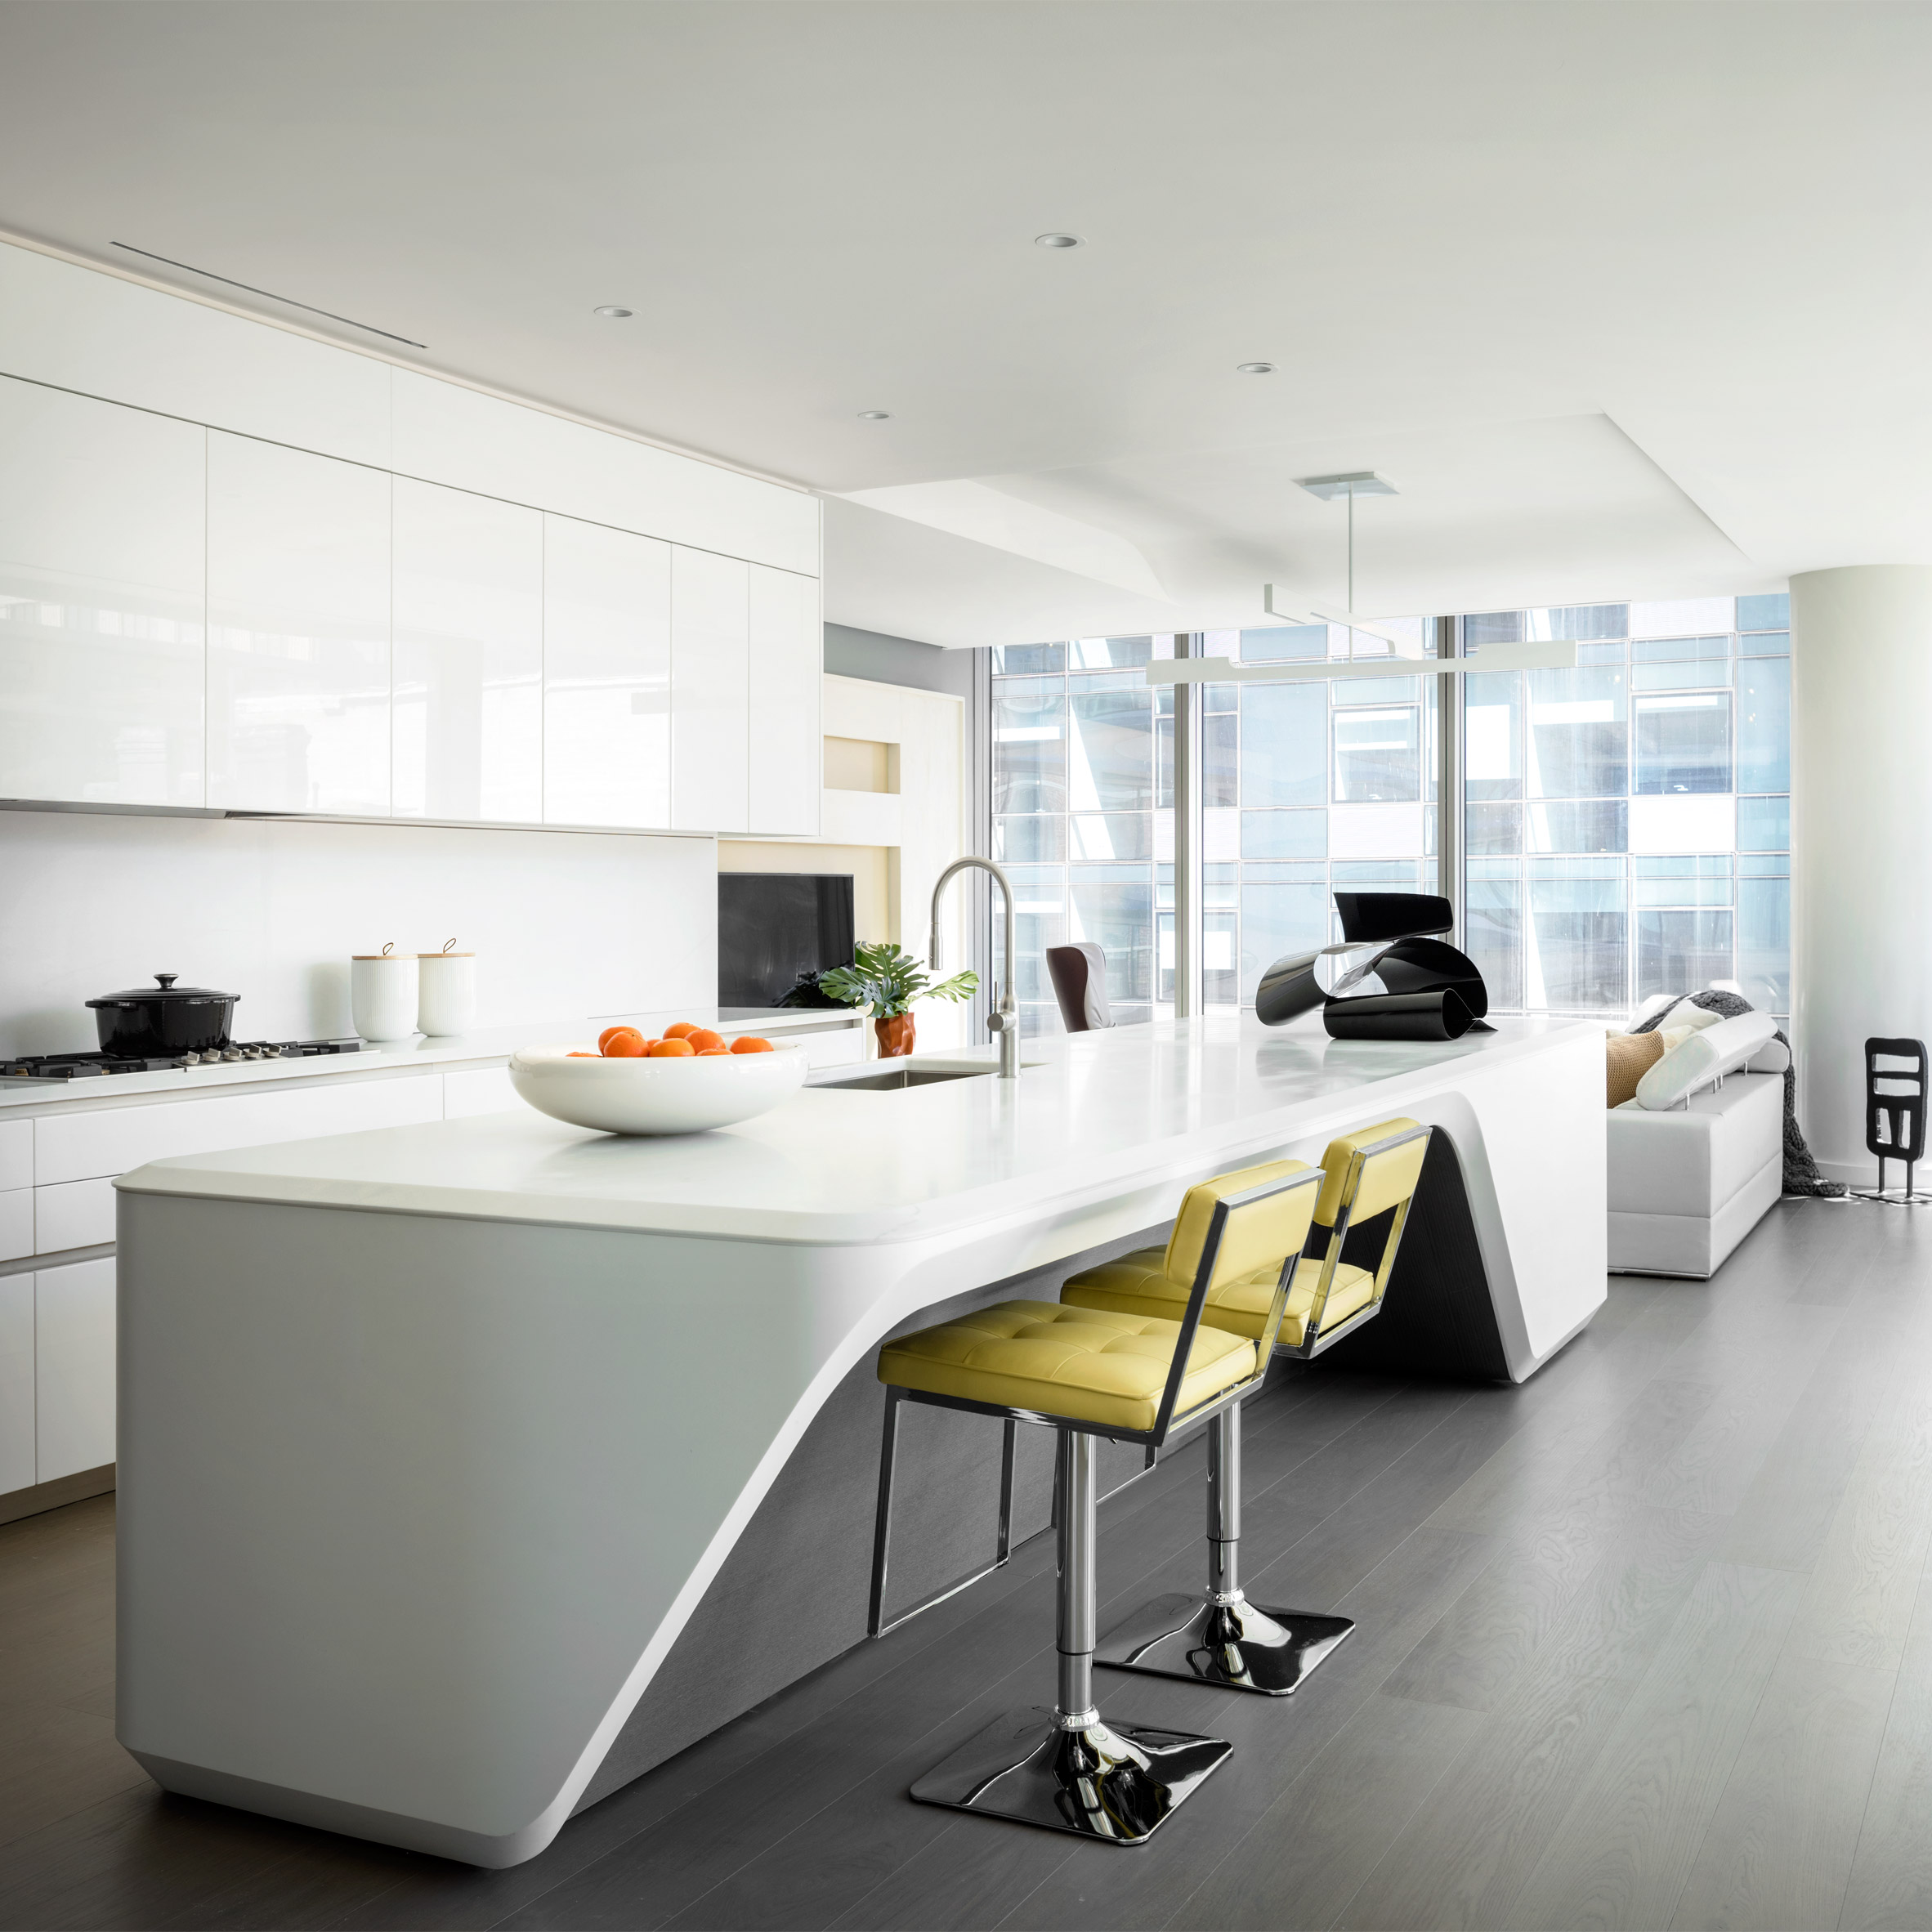 Model Apartments Offer A Taste Of Life Inside Zaha Hadidu0027s New York Condo  Building